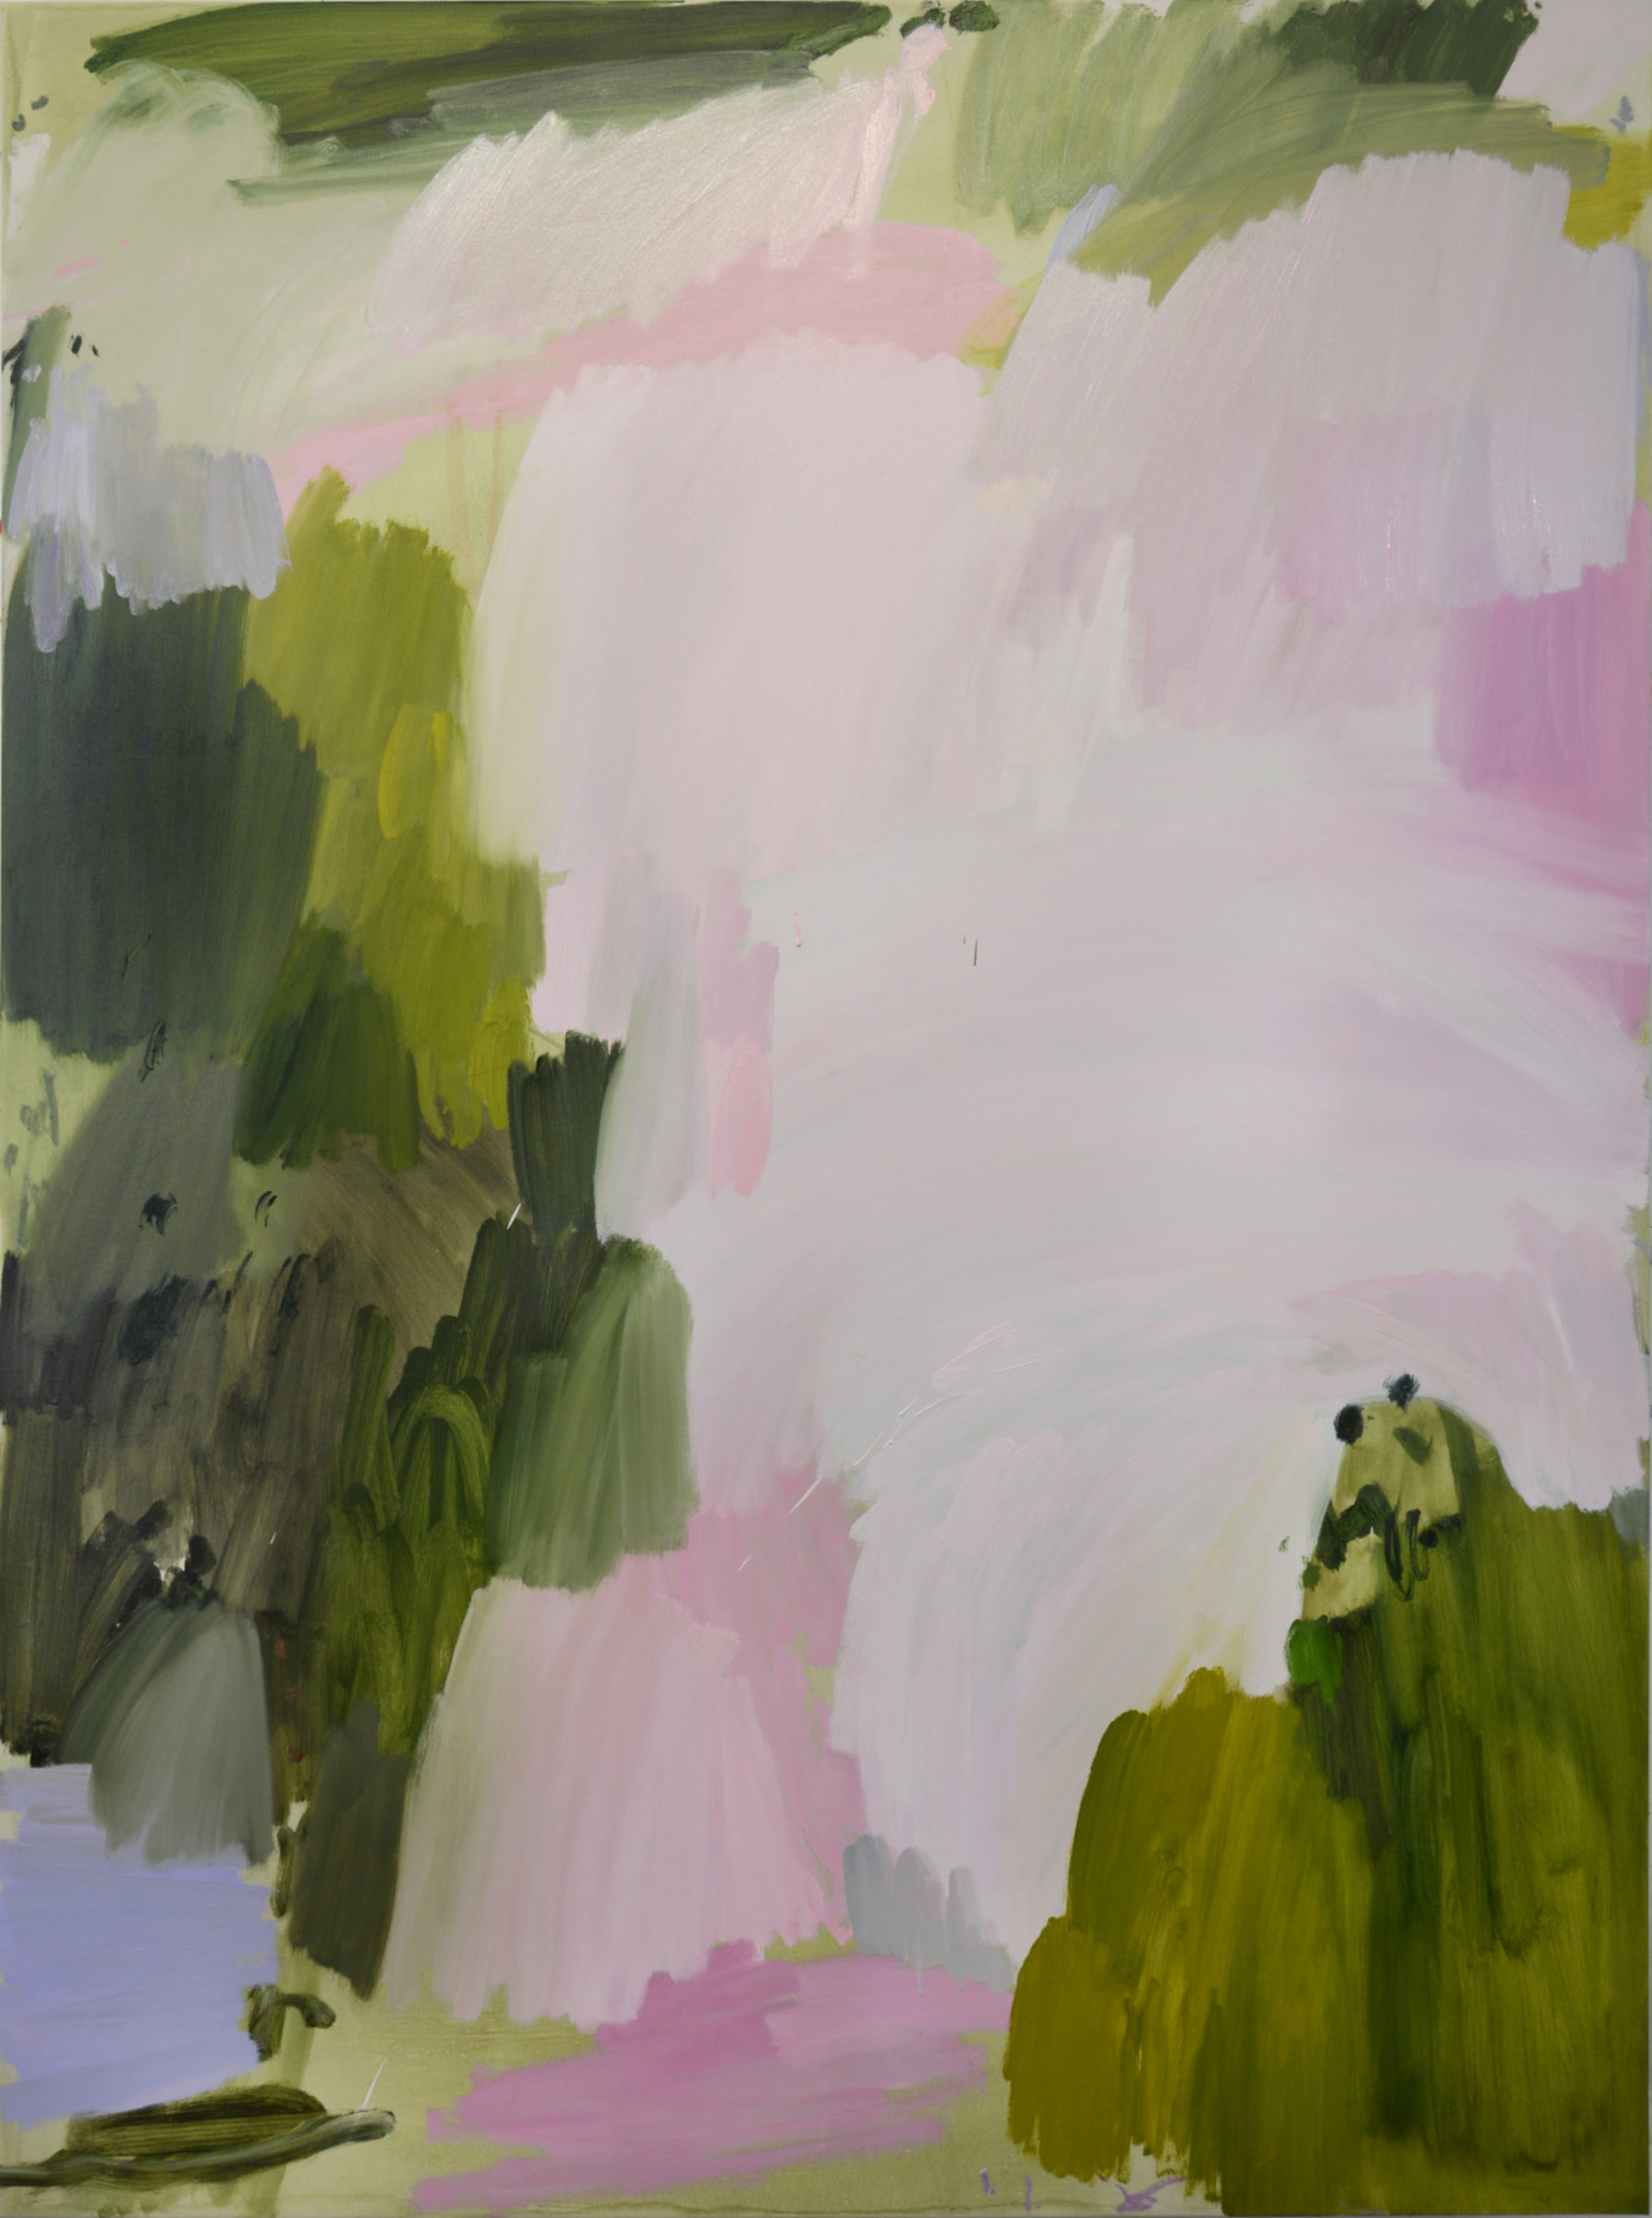 BG_ECG_A-warm-breeze_2019_Oil-and-pastel-on-canvas_180x133.5cm_5000